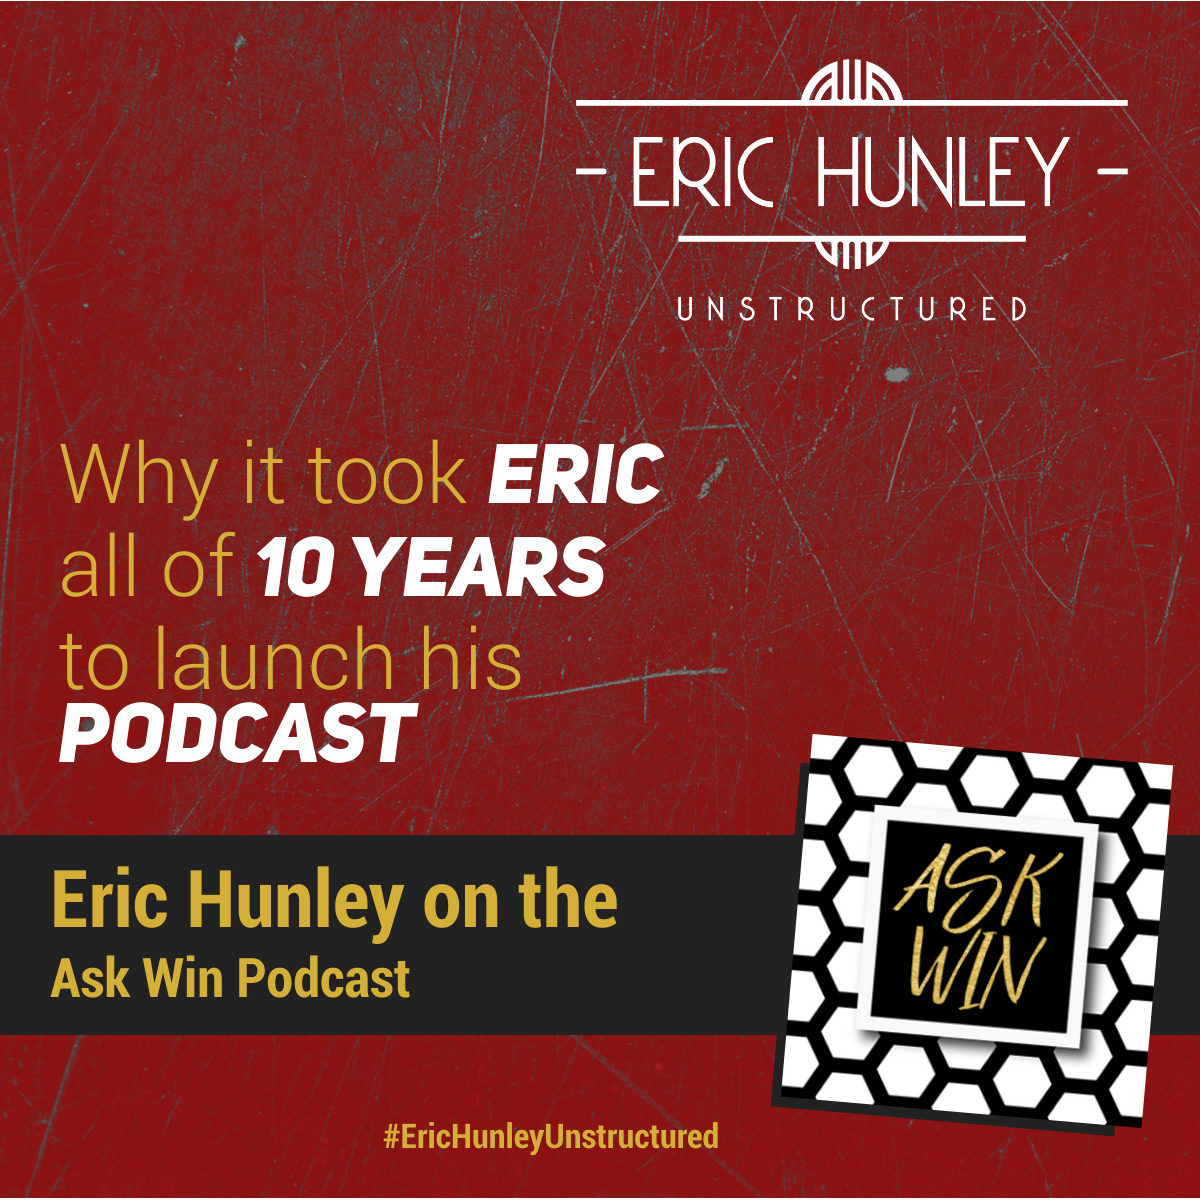 Eric Hunley Podcast Appearance Interviews - Ask Win Podcast Square Post